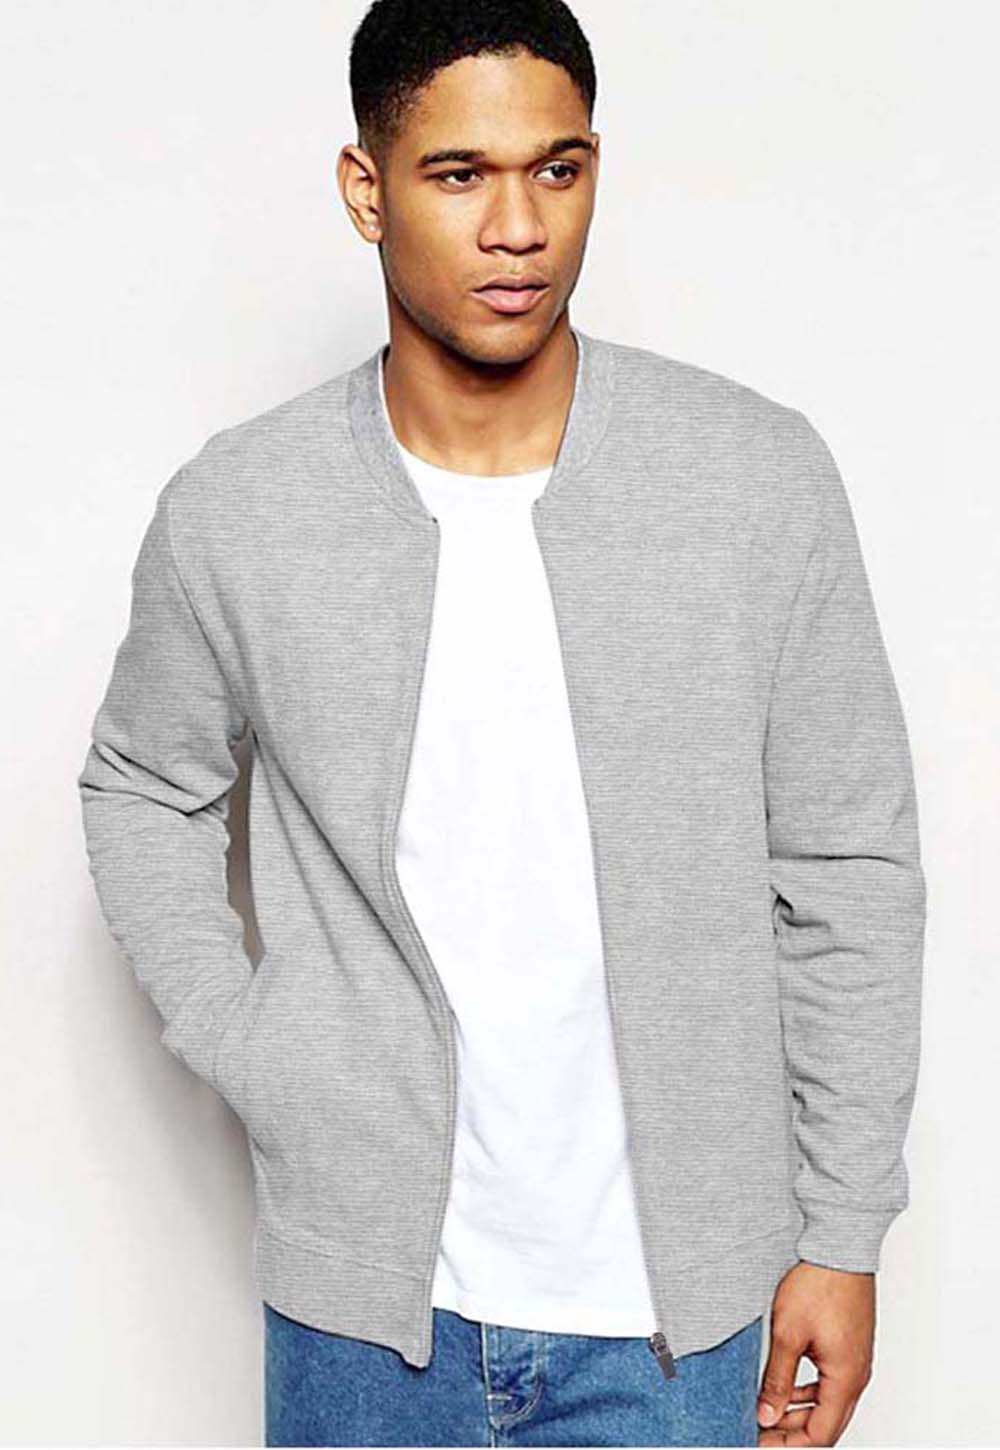 cotton sensations Men's Hoodies Grey / S Men's Cotton Sensations Grey Mock Neck Zipper